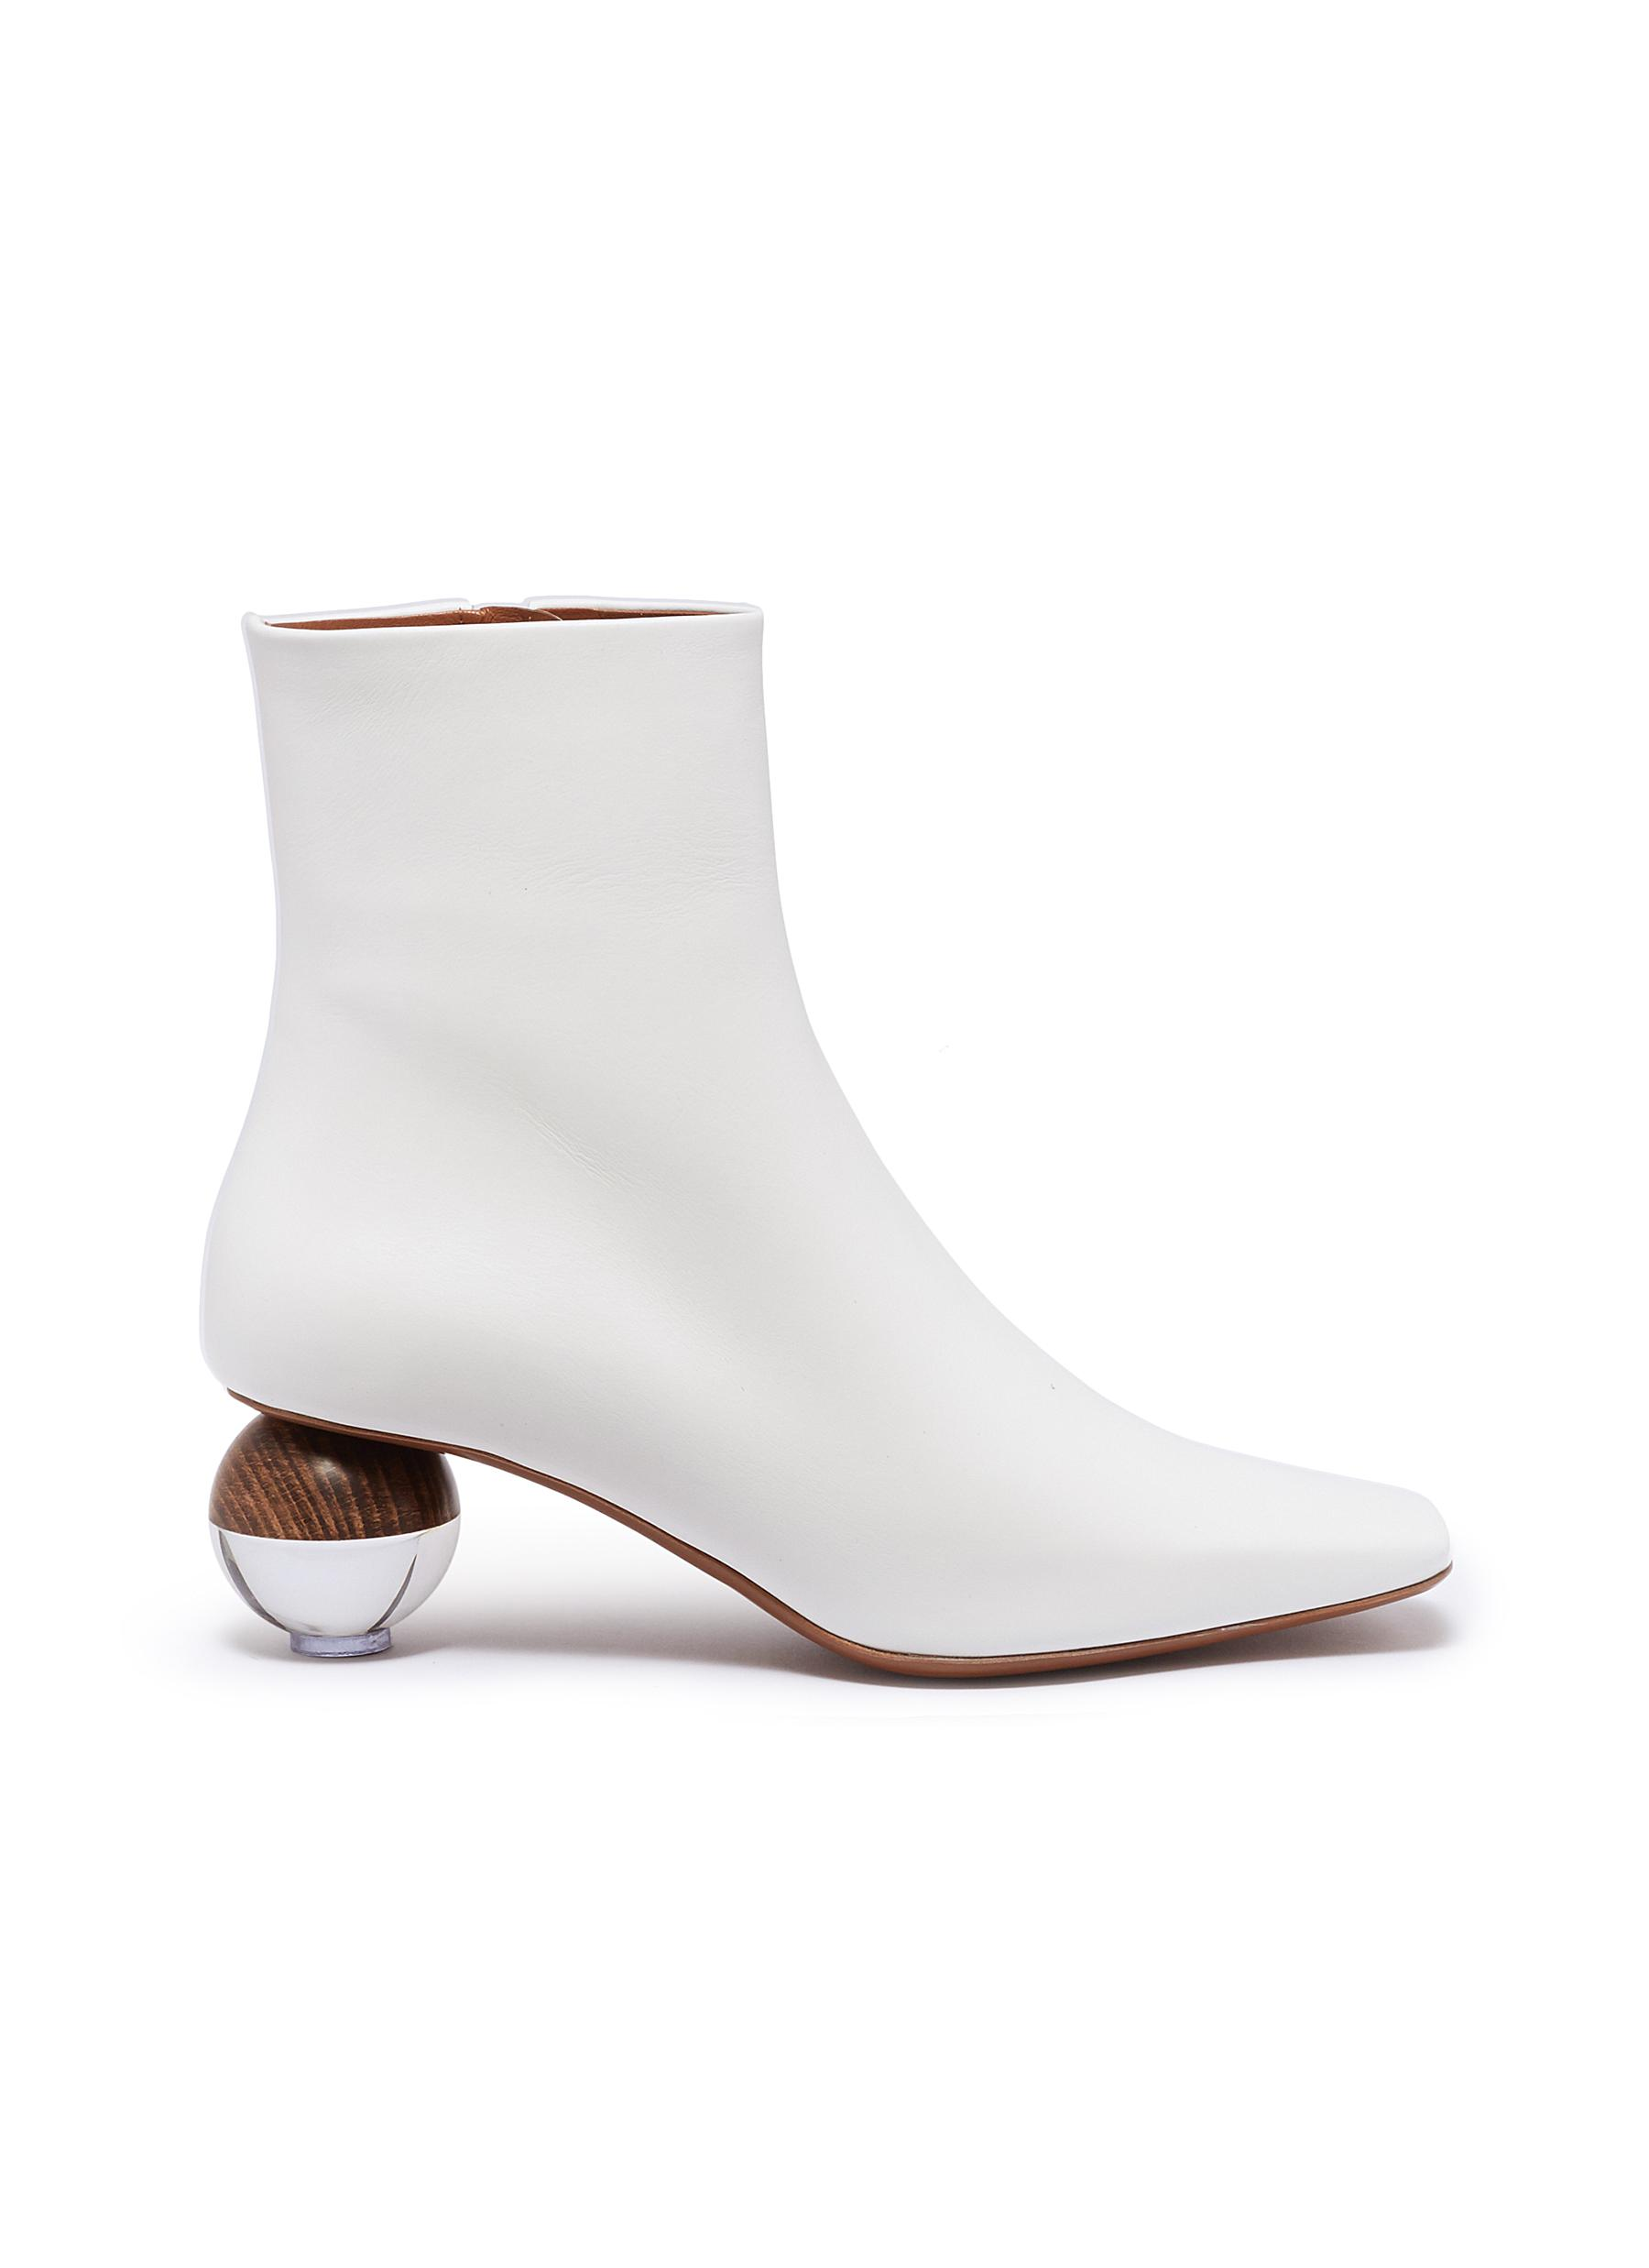 Encyclia sphere heel leather ankle boots by NEOUS